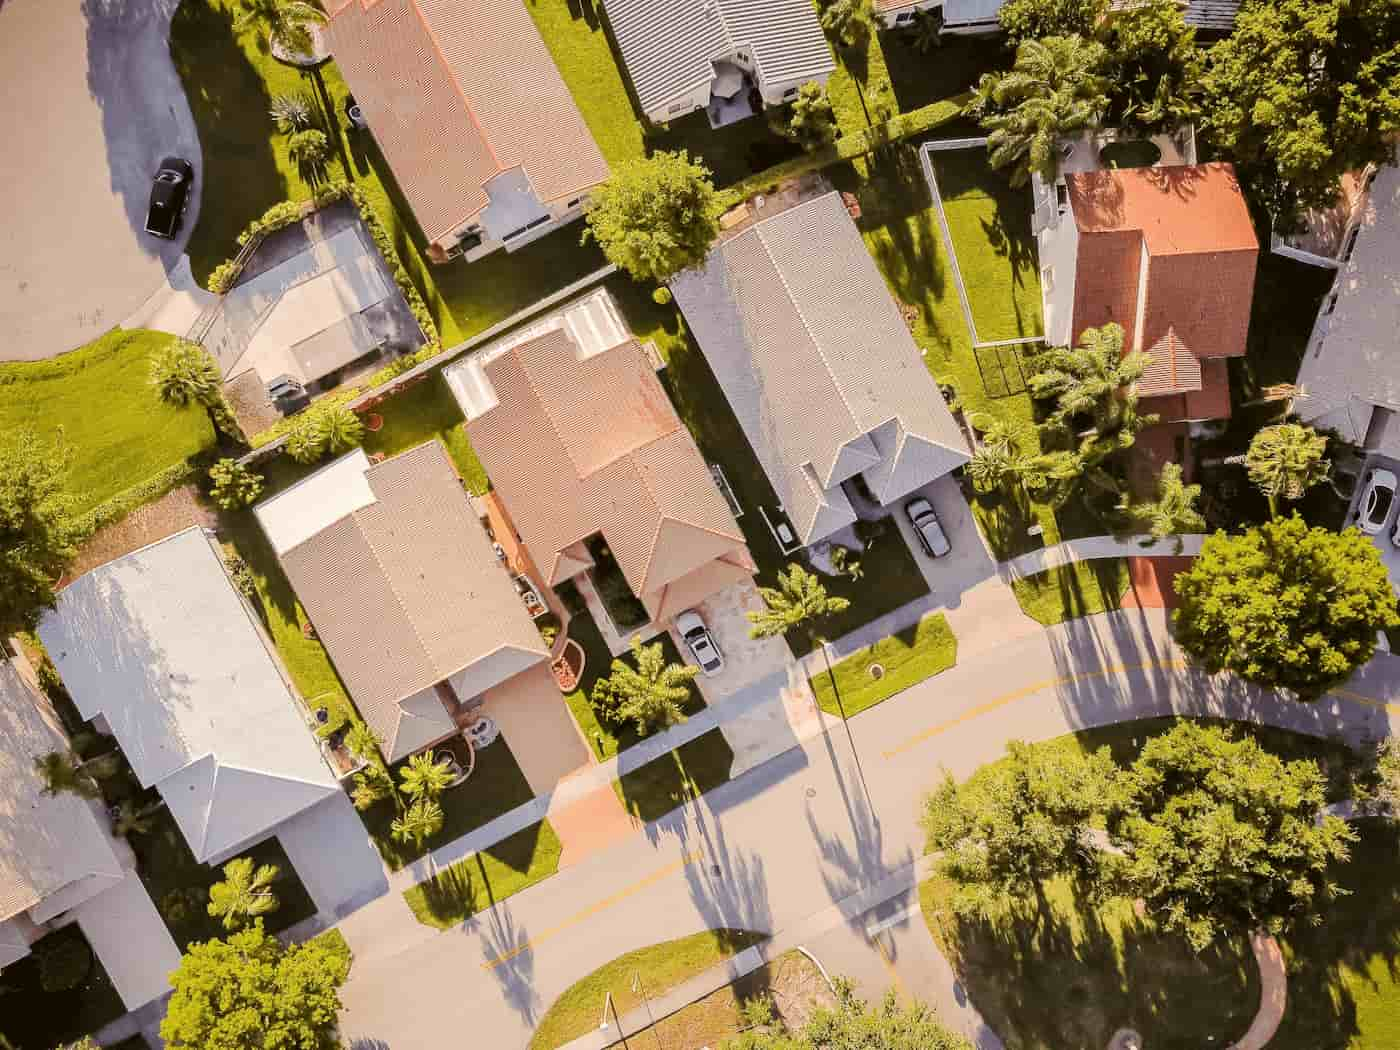 Residential real estate properties in Tampa, FL, great for investing!